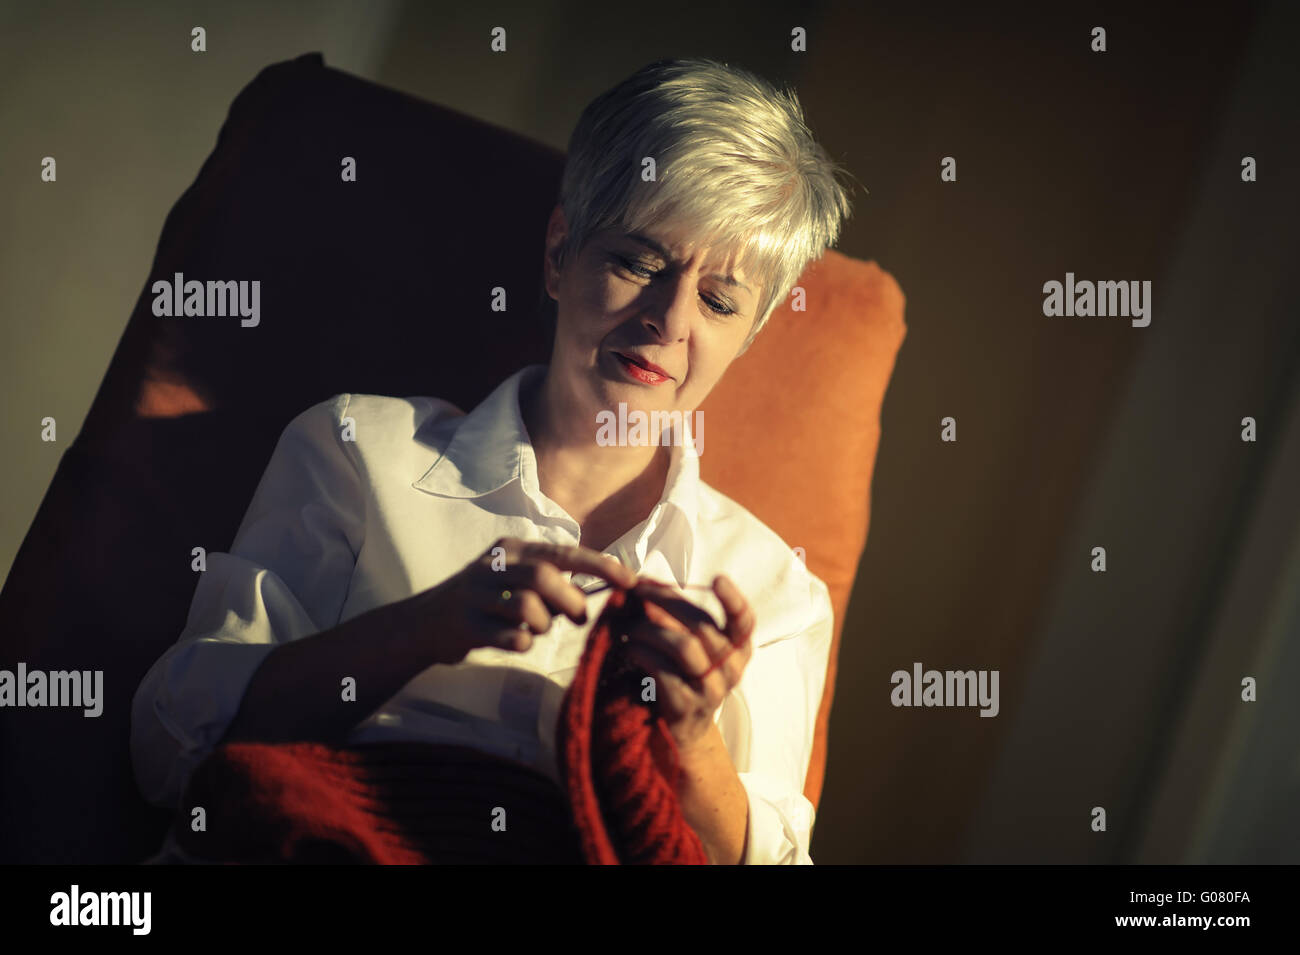 woman sitting in chair knitting stockfotos woman sitting in chair knitting bilder alamy. Black Bedroom Furniture Sets. Home Design Ideas